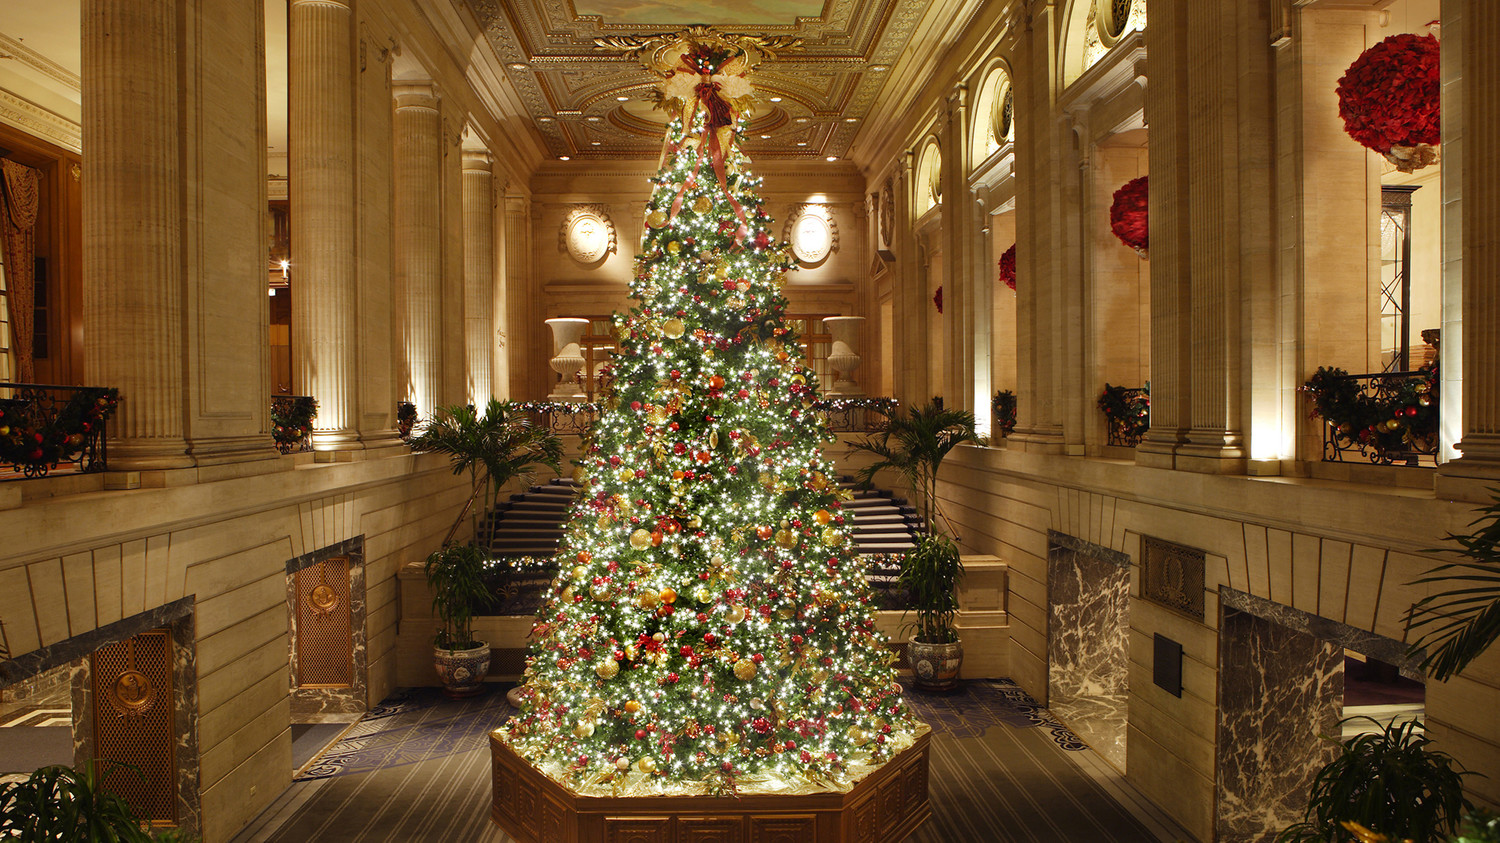 10 hotels with over the top holiday dcor martha stewart - Chicago Christmas Decorations